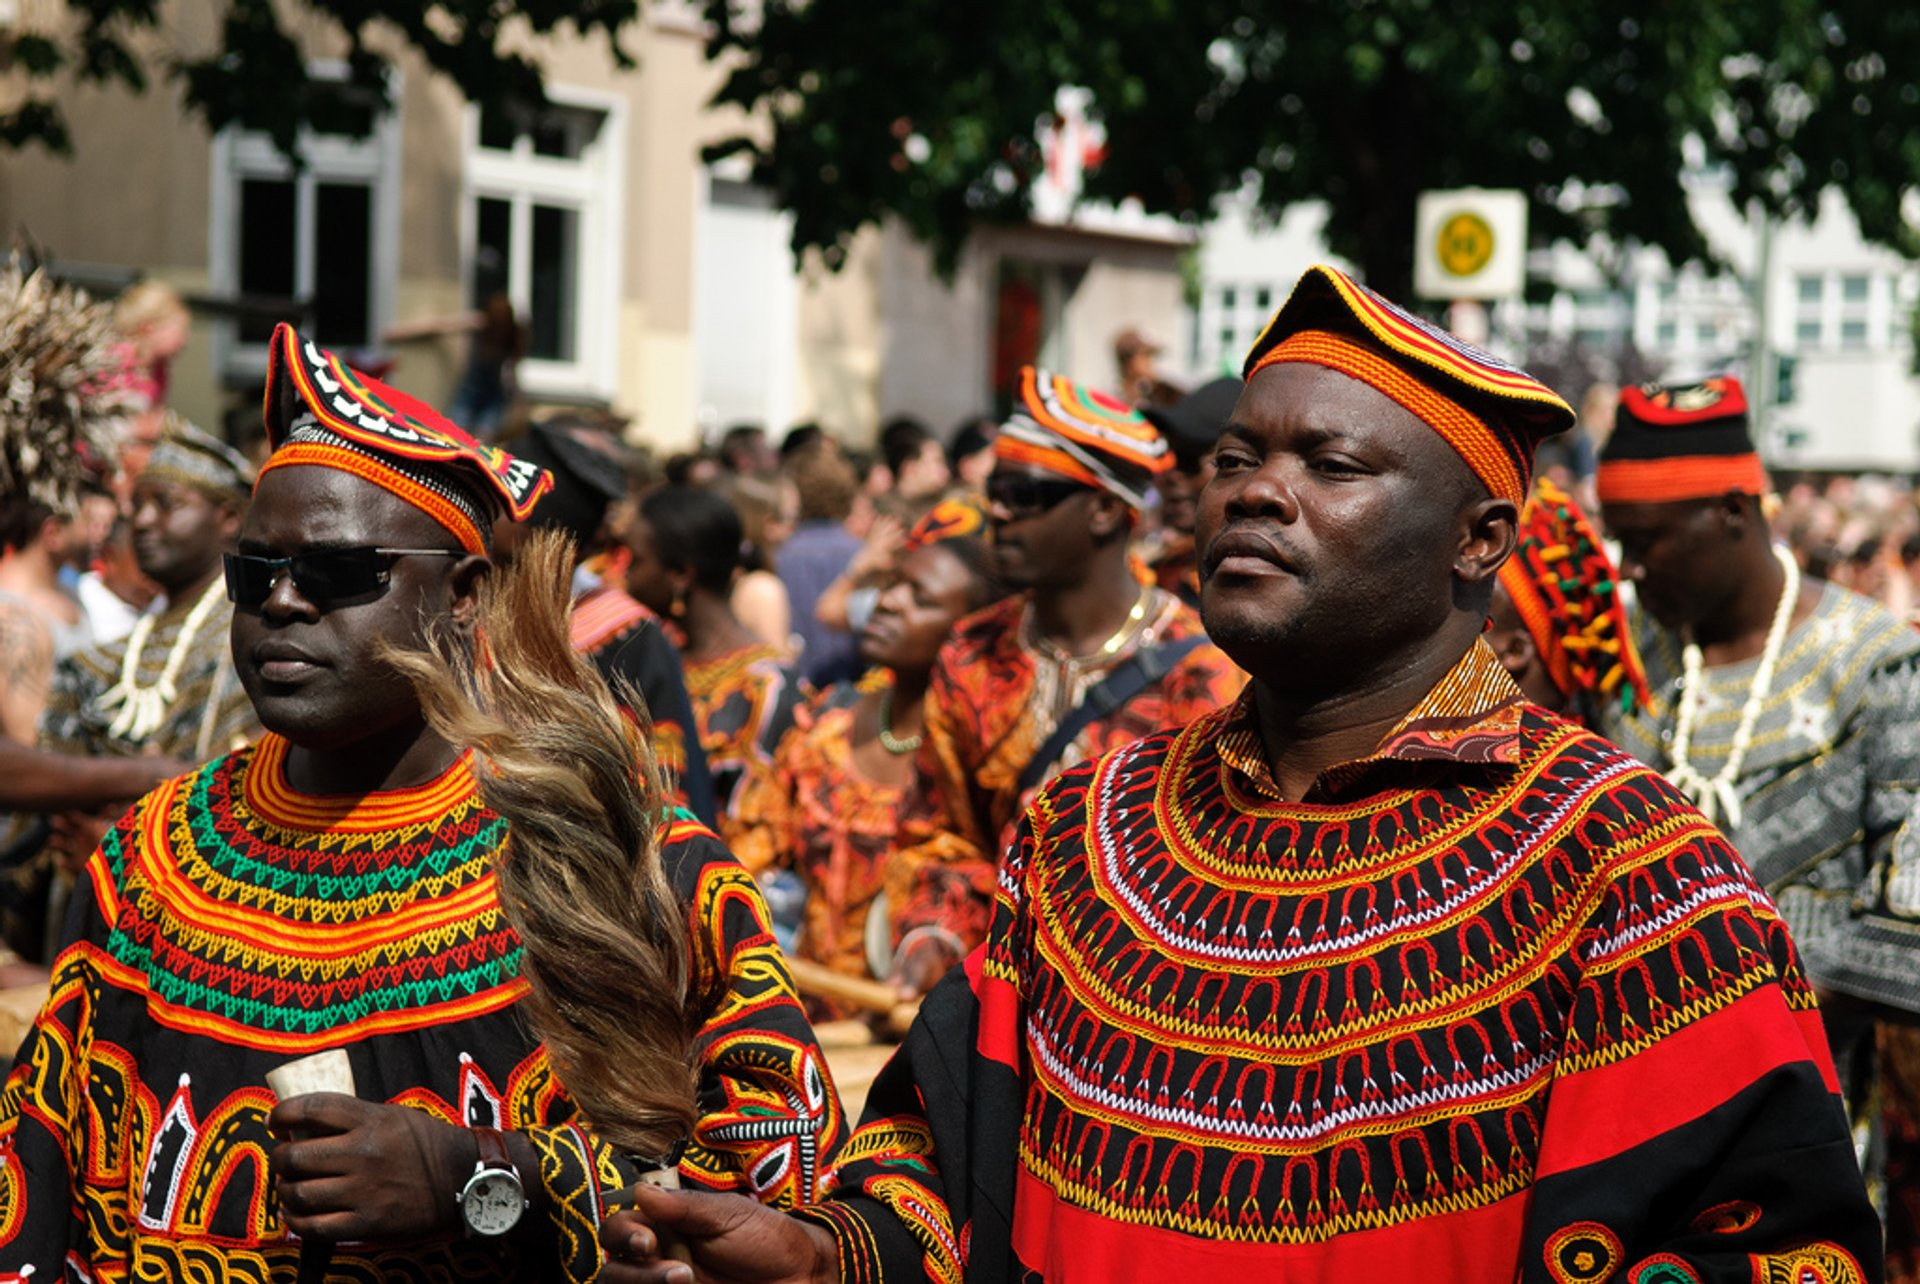 Best time to see Carnival of Cultures in Berlin 2019